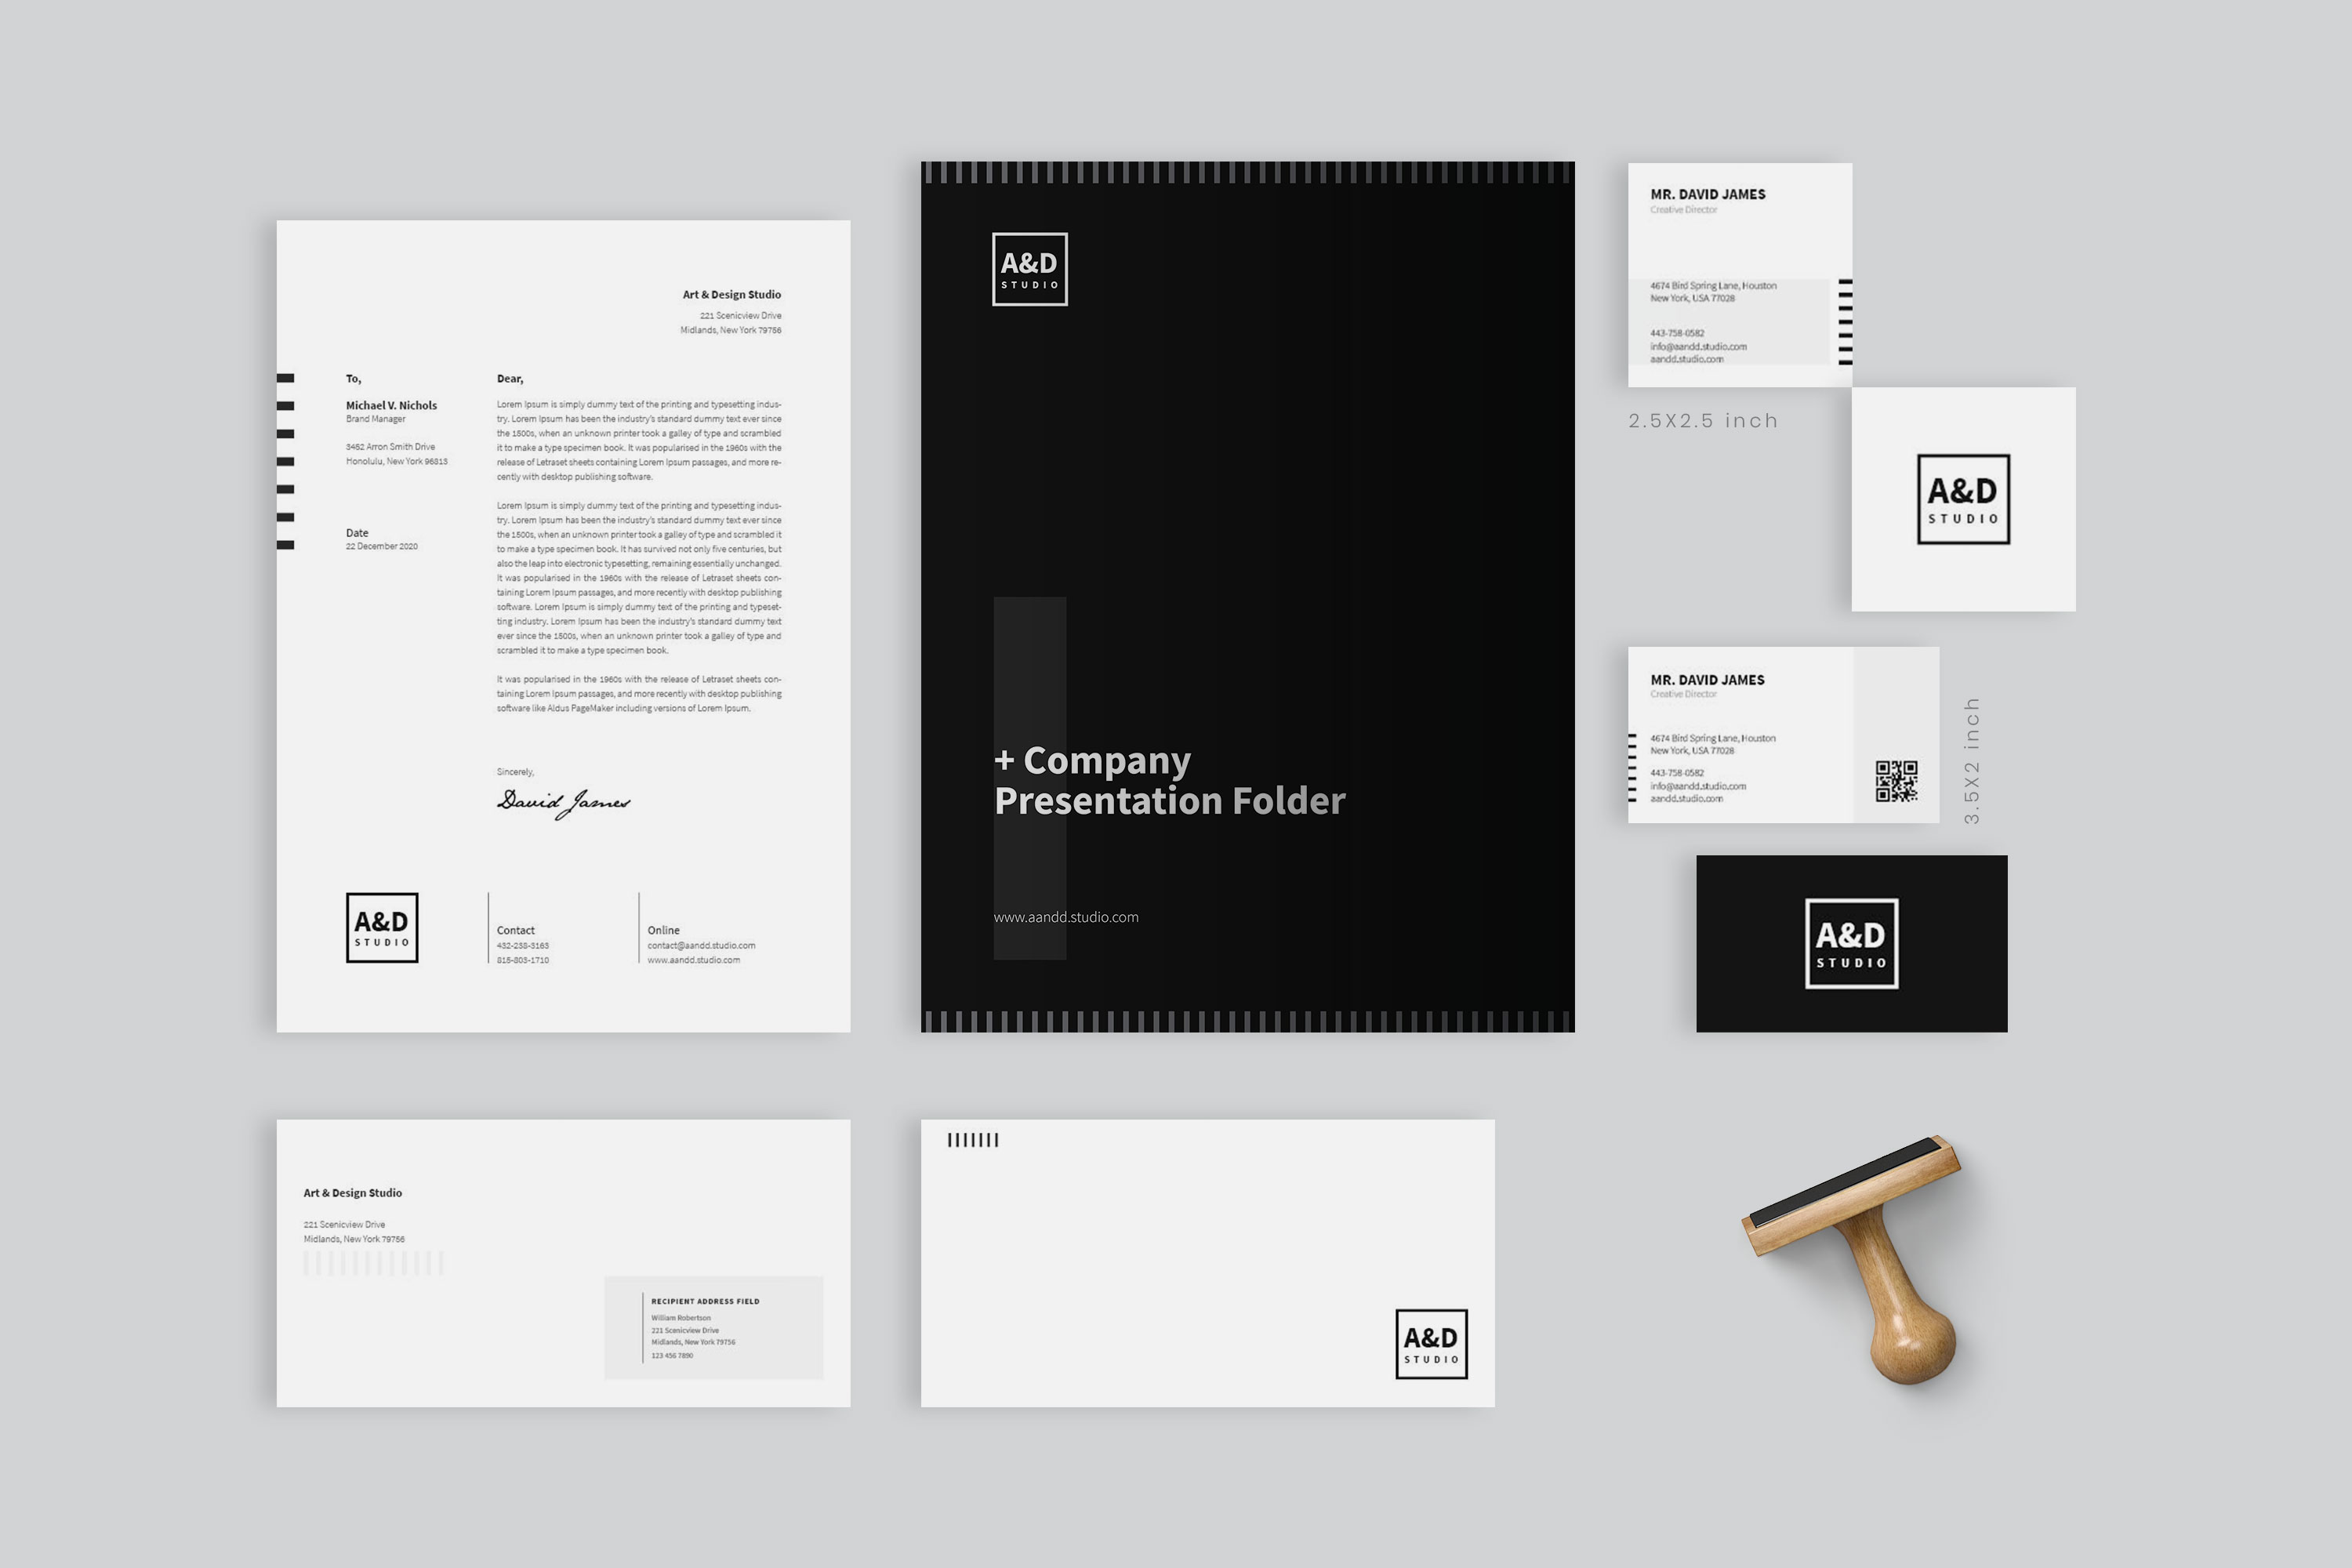 Minimal Corporate Identity Branding Set example image 1